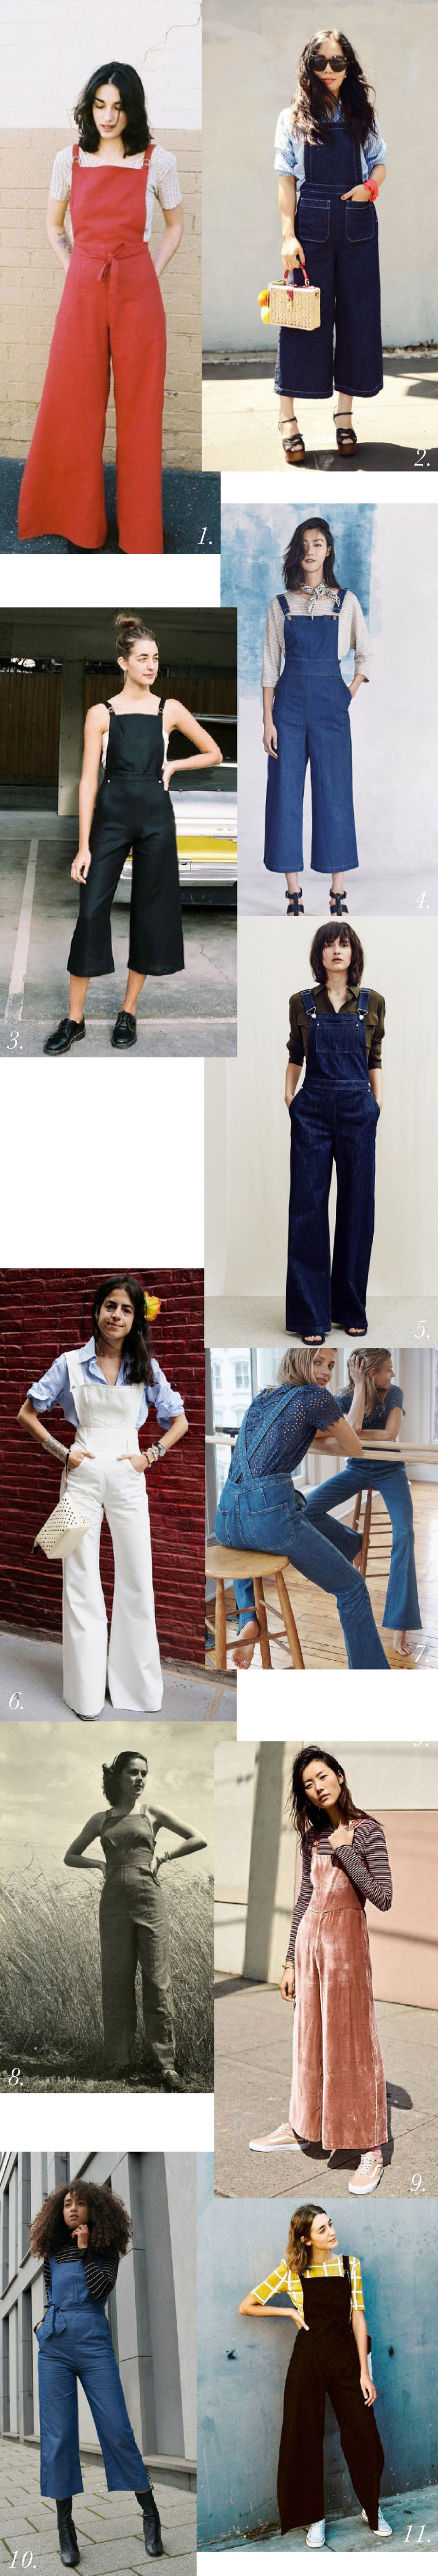 Overalls outfit & styling inspiration // Jenny Overalls & Trouser Pattern // Closet Case Patterns